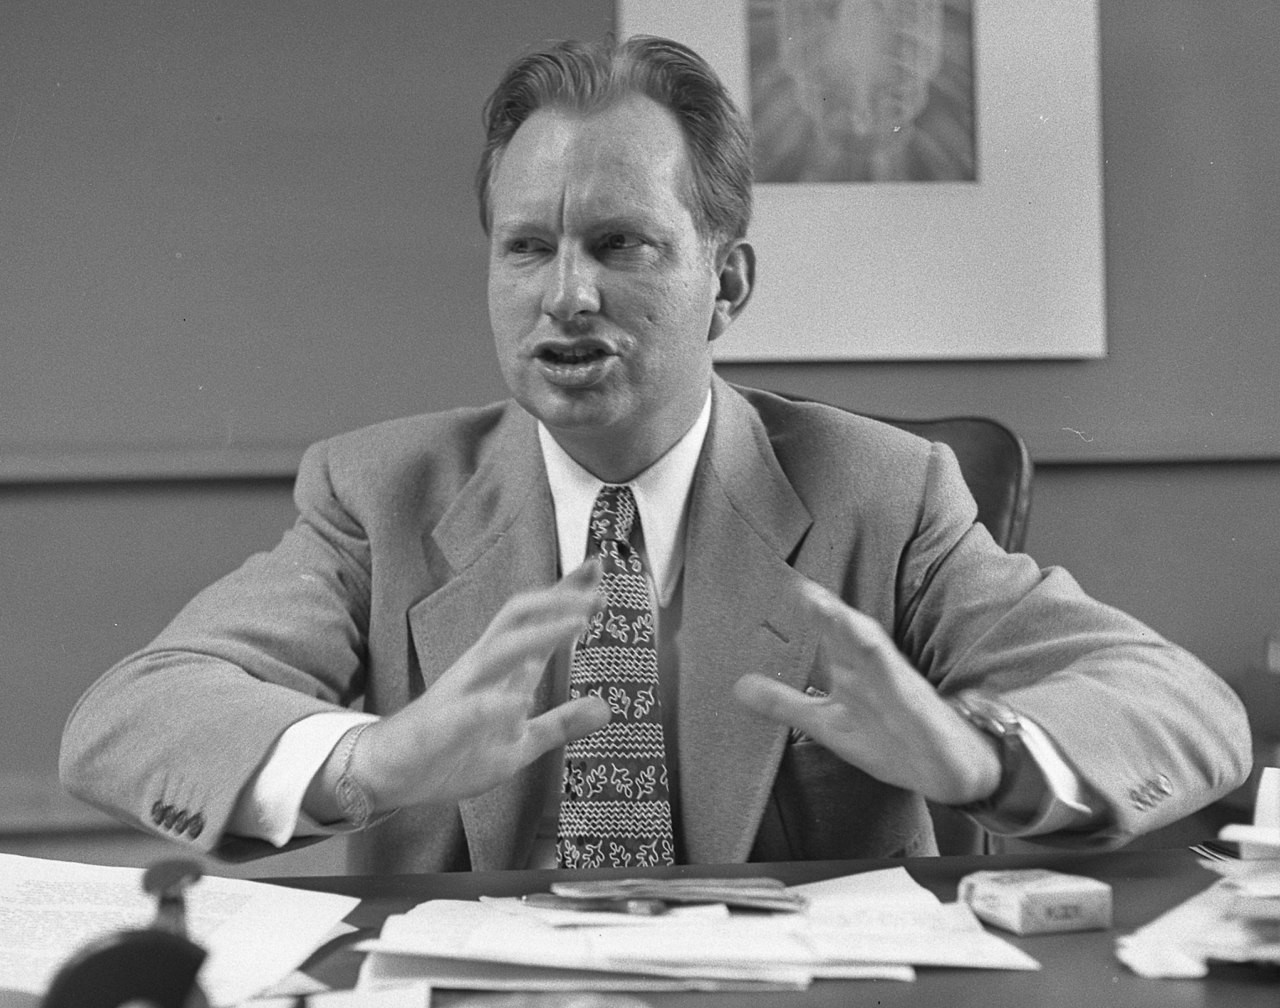 L. Ron Hubbard sitting behind a desk. His arms are hovering above the desk to emphasise a point, and his face is scrunched in mid-sentence.